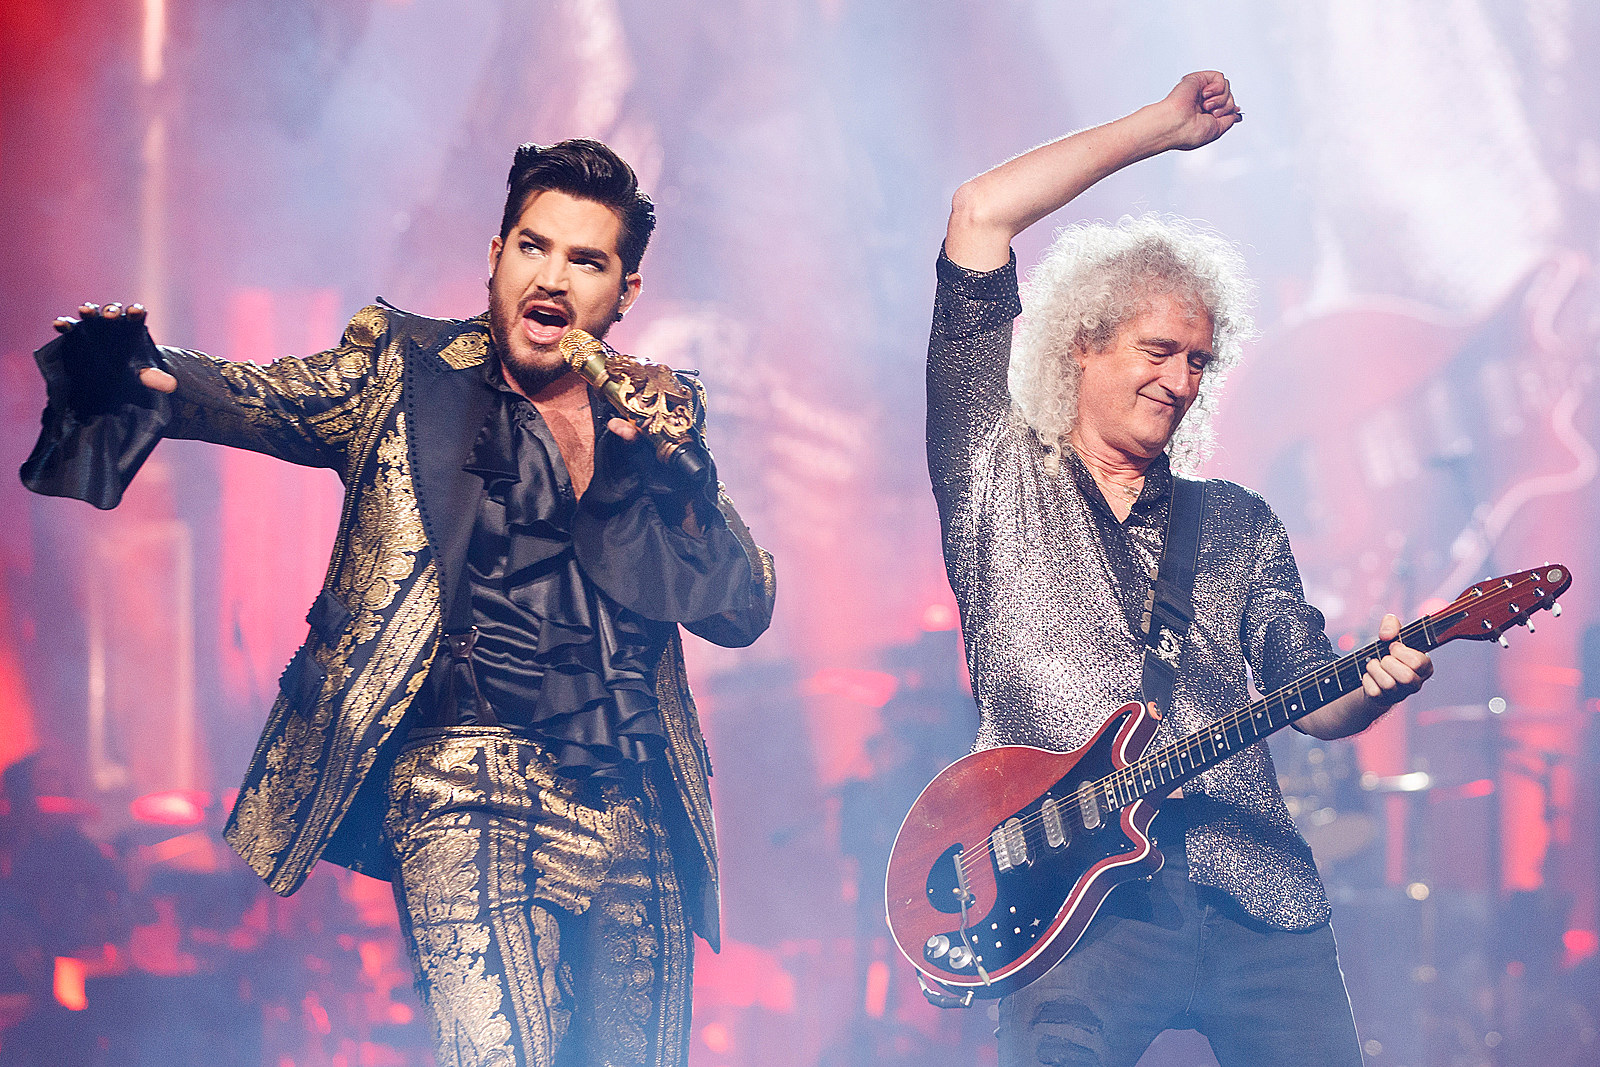 Queen and Adam Lambert Kick Off 'Rhapsody' Tour: Set List, Photos